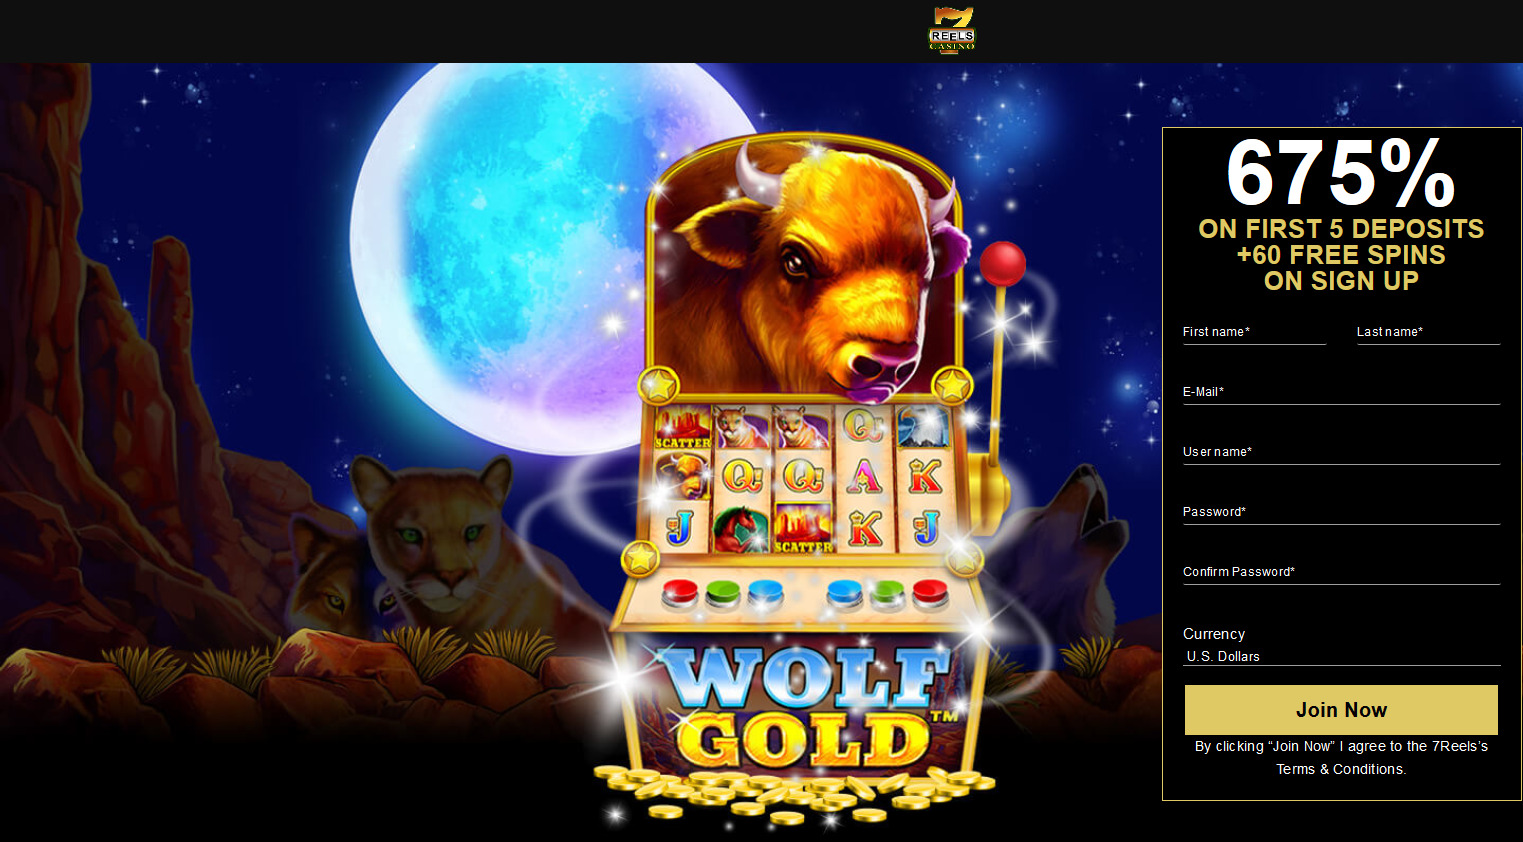 7Reels Casino - EN - 675% + 60 free spins. Game: Wolf Gold